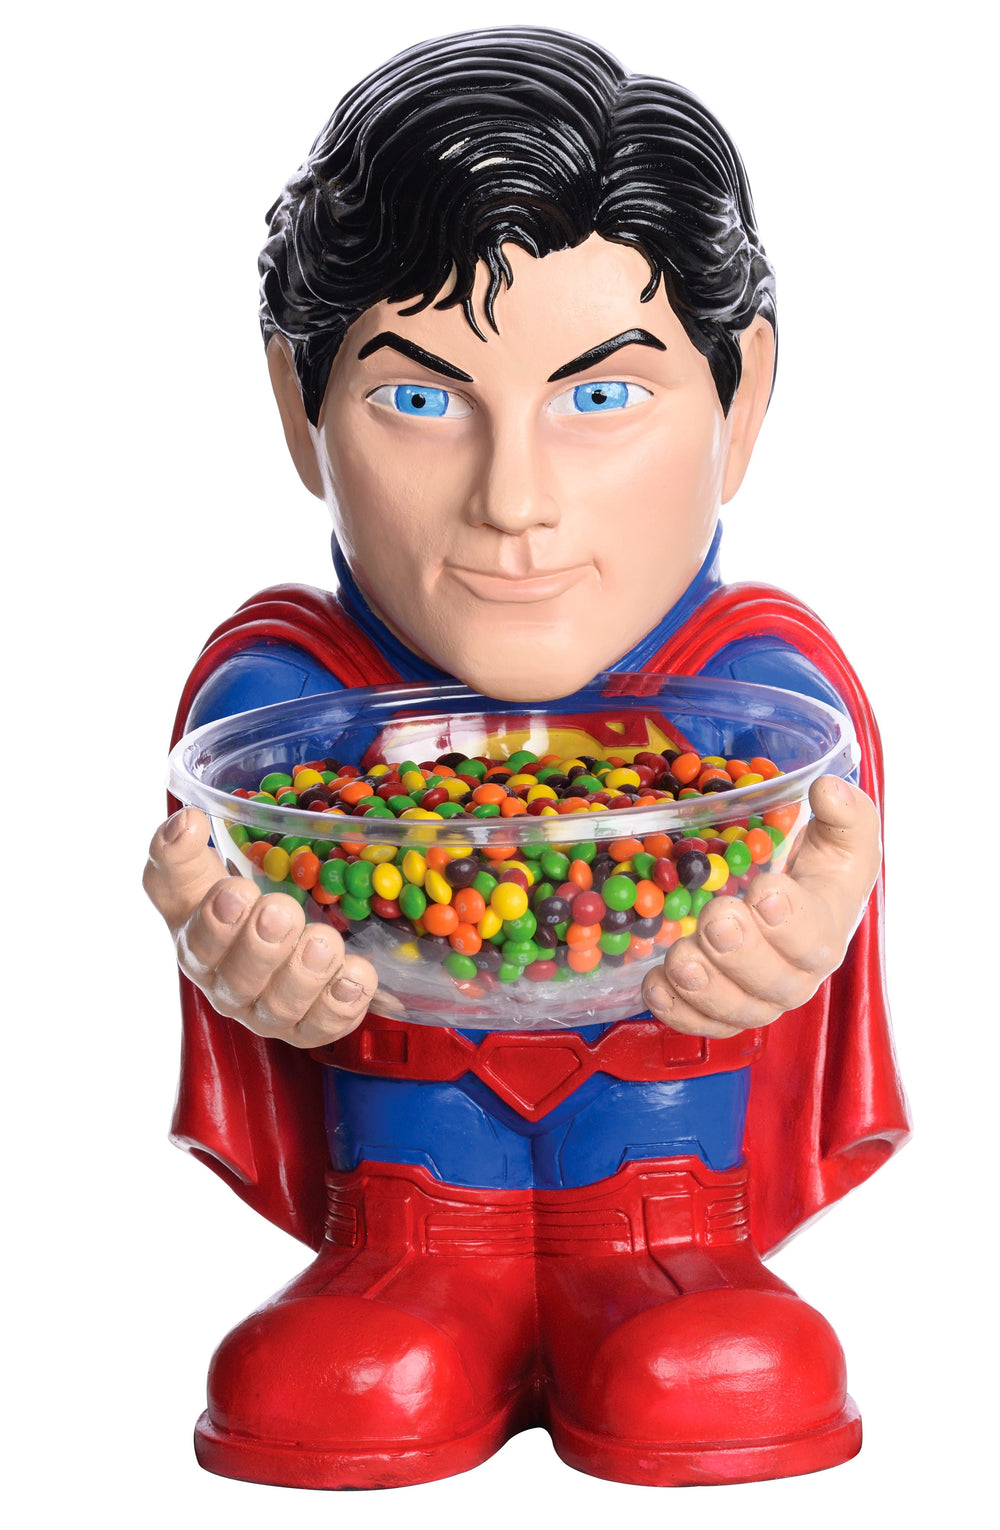 Candy Bowl Holder DC Superman Half Foam Licensed Statue - LM Treasures Life Size Statues & Prop Rental